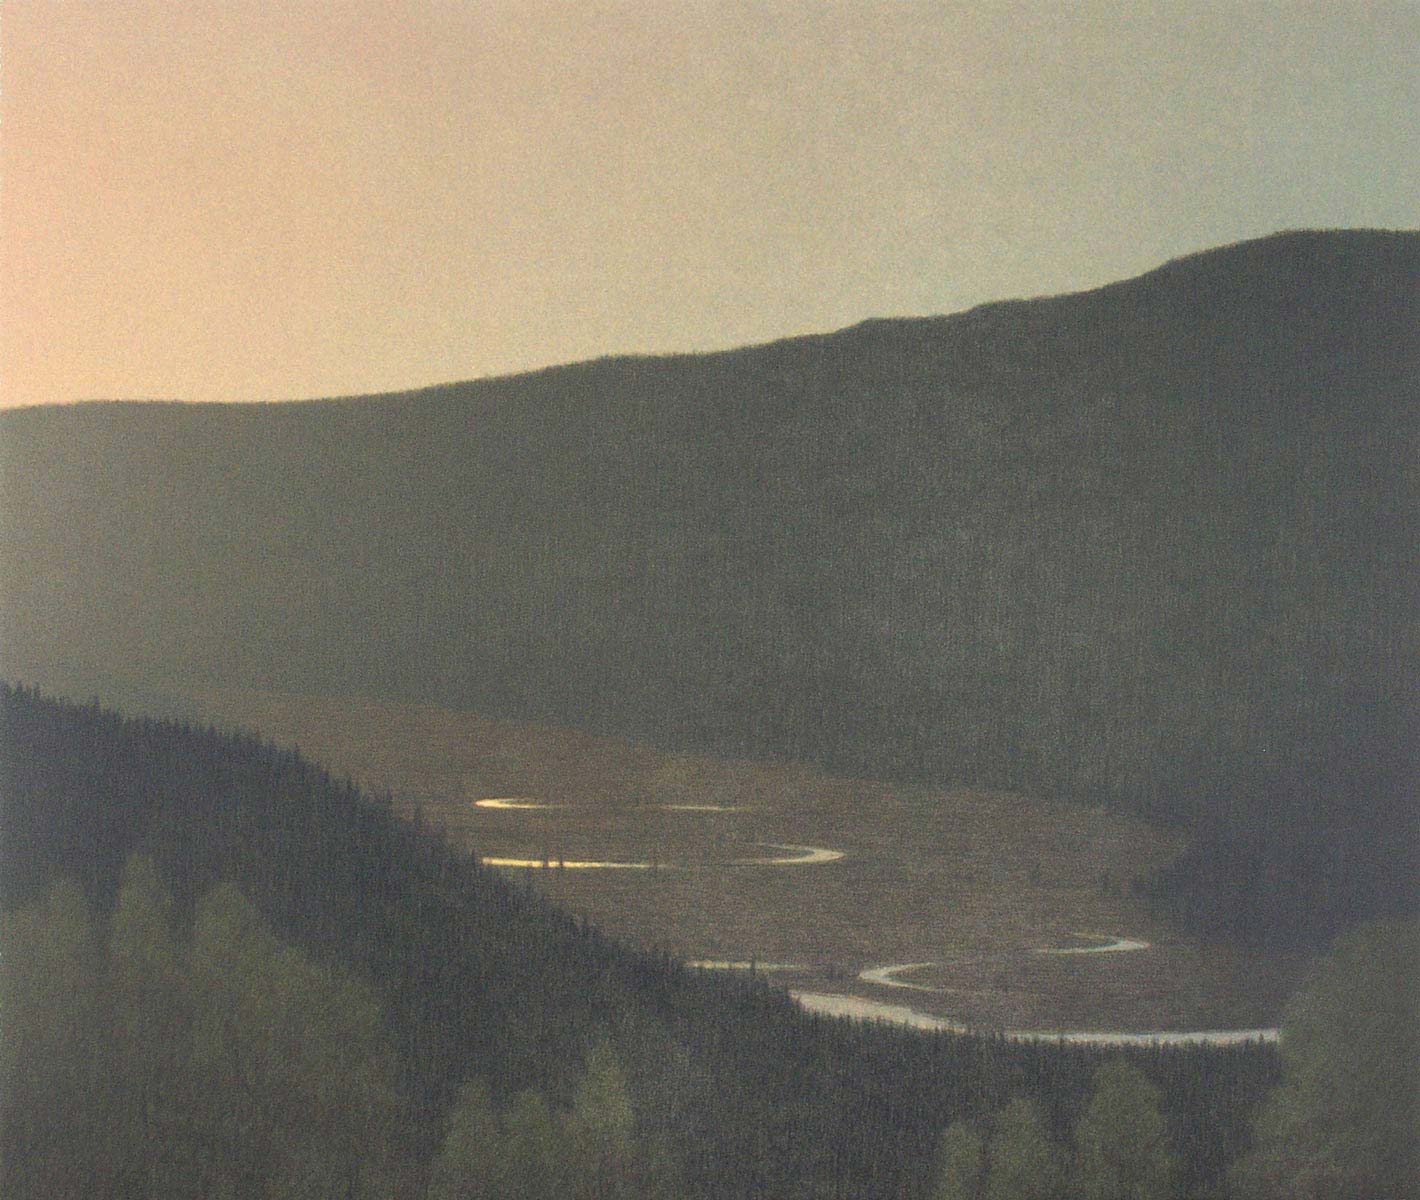 Chatham-Headwaters of the Colorado River